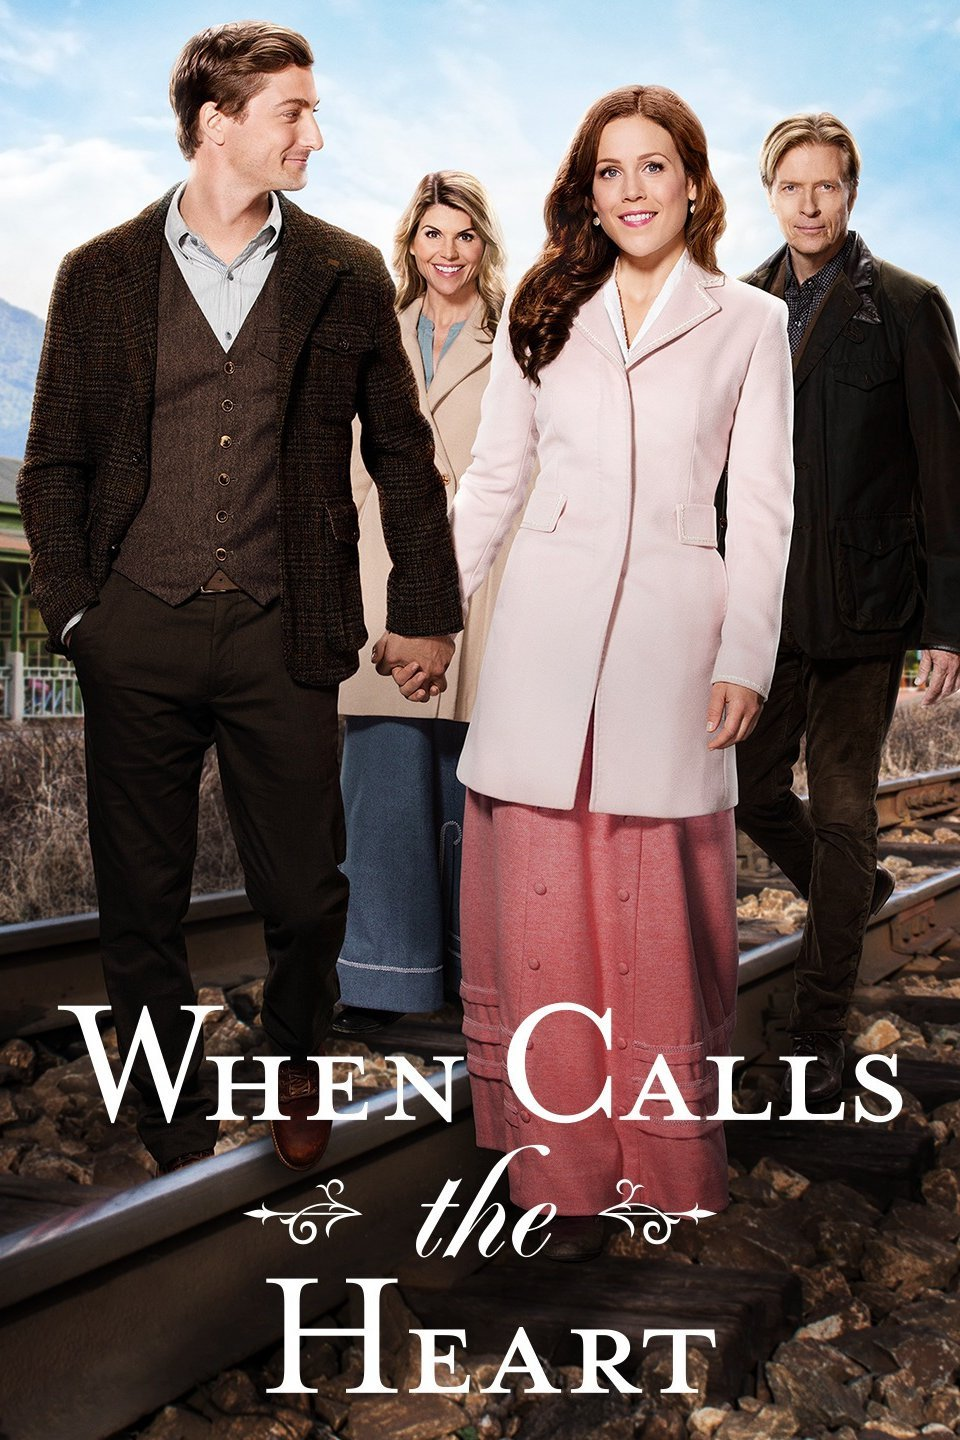 When Calls the Heart Season 4 Download Complete 480p HDTV